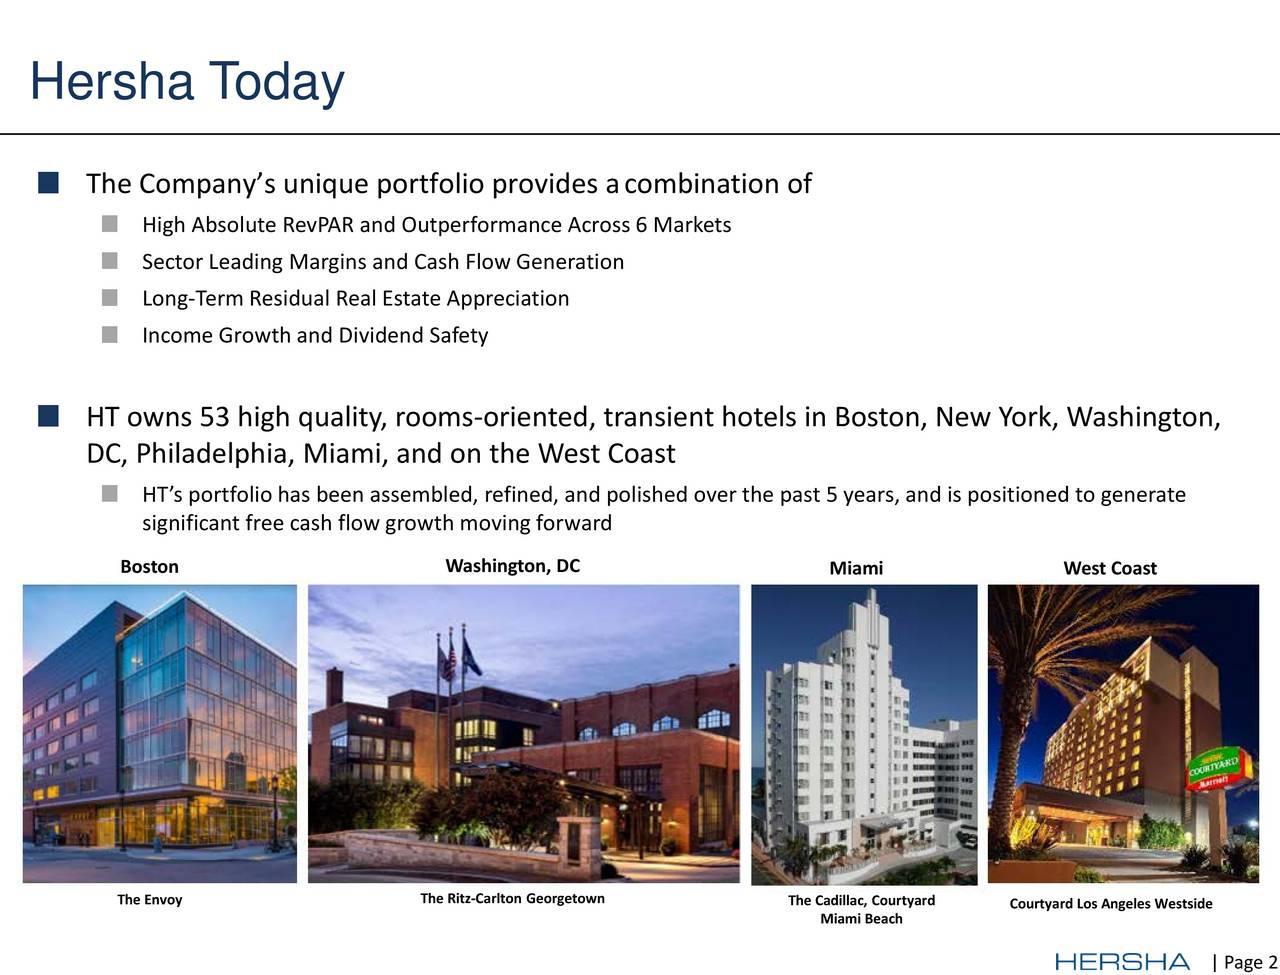 The Companys unique portfolio provides acombination of High Absolute RevPAR and Outperformance Across 6 Markets Sector Leading Margins and Cash Flow Generation Long-TermResidual Real Estate Appreciation Income Growth and Dividend Safety HT owns 53 high quality, rooms-oriented, transient hotels in Boston, New York, Washington, DC, Philadelphia, Miami,and on the West Coast HTs portfolio has been assembled,refined, and polished over the past 5 years,and is positioned to generate significant free cash flow growth moving forward Boston Washington, DC Miami West Coast The Envoy The Ritz-Carlton Georgetown The Cadillac, CourtyCourtyard Los Angeles Westside Miami Beach